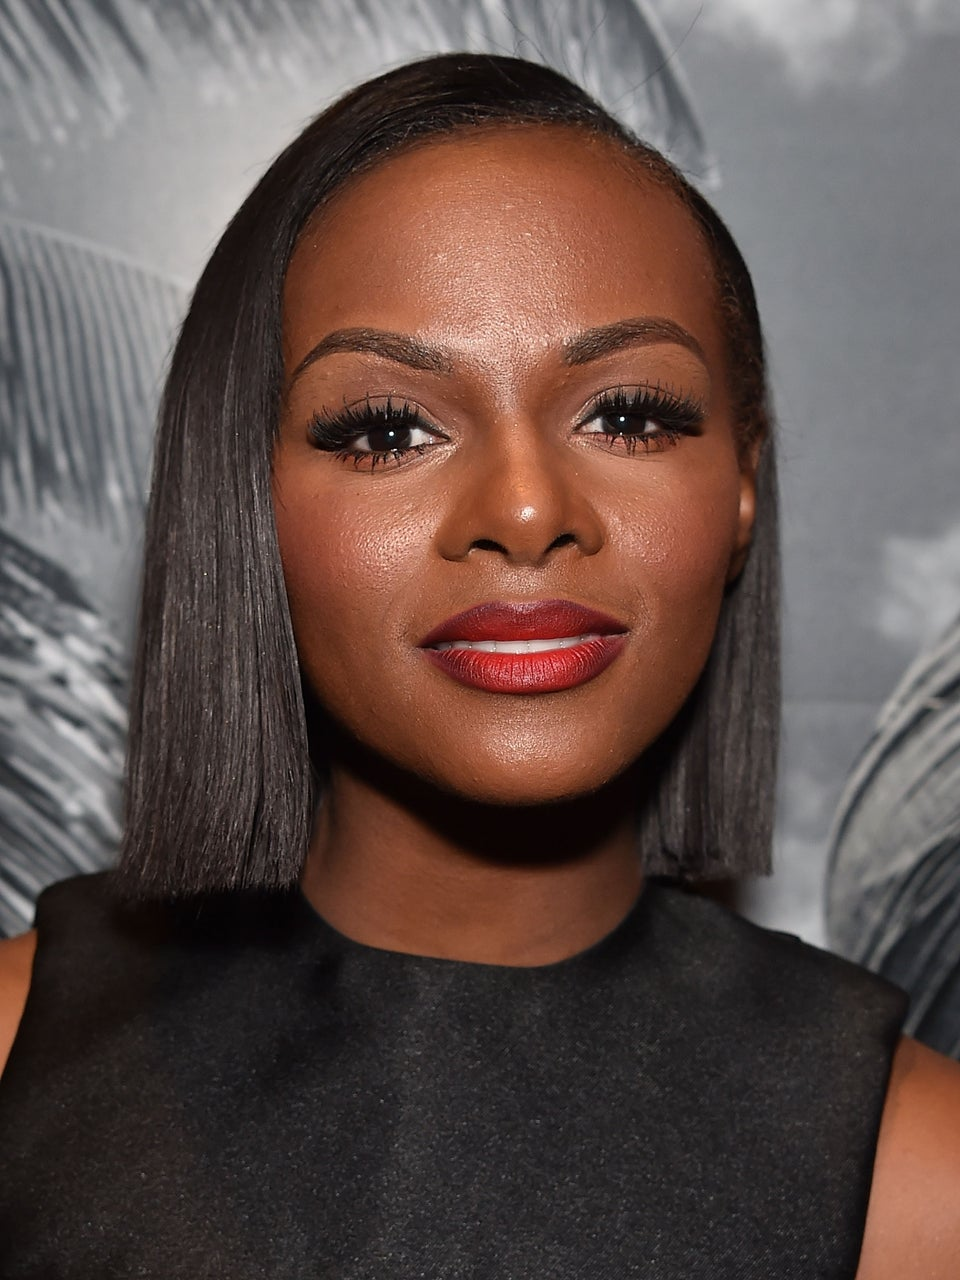 He Put A Ring On It: Tika Sumpter Is Engaged!